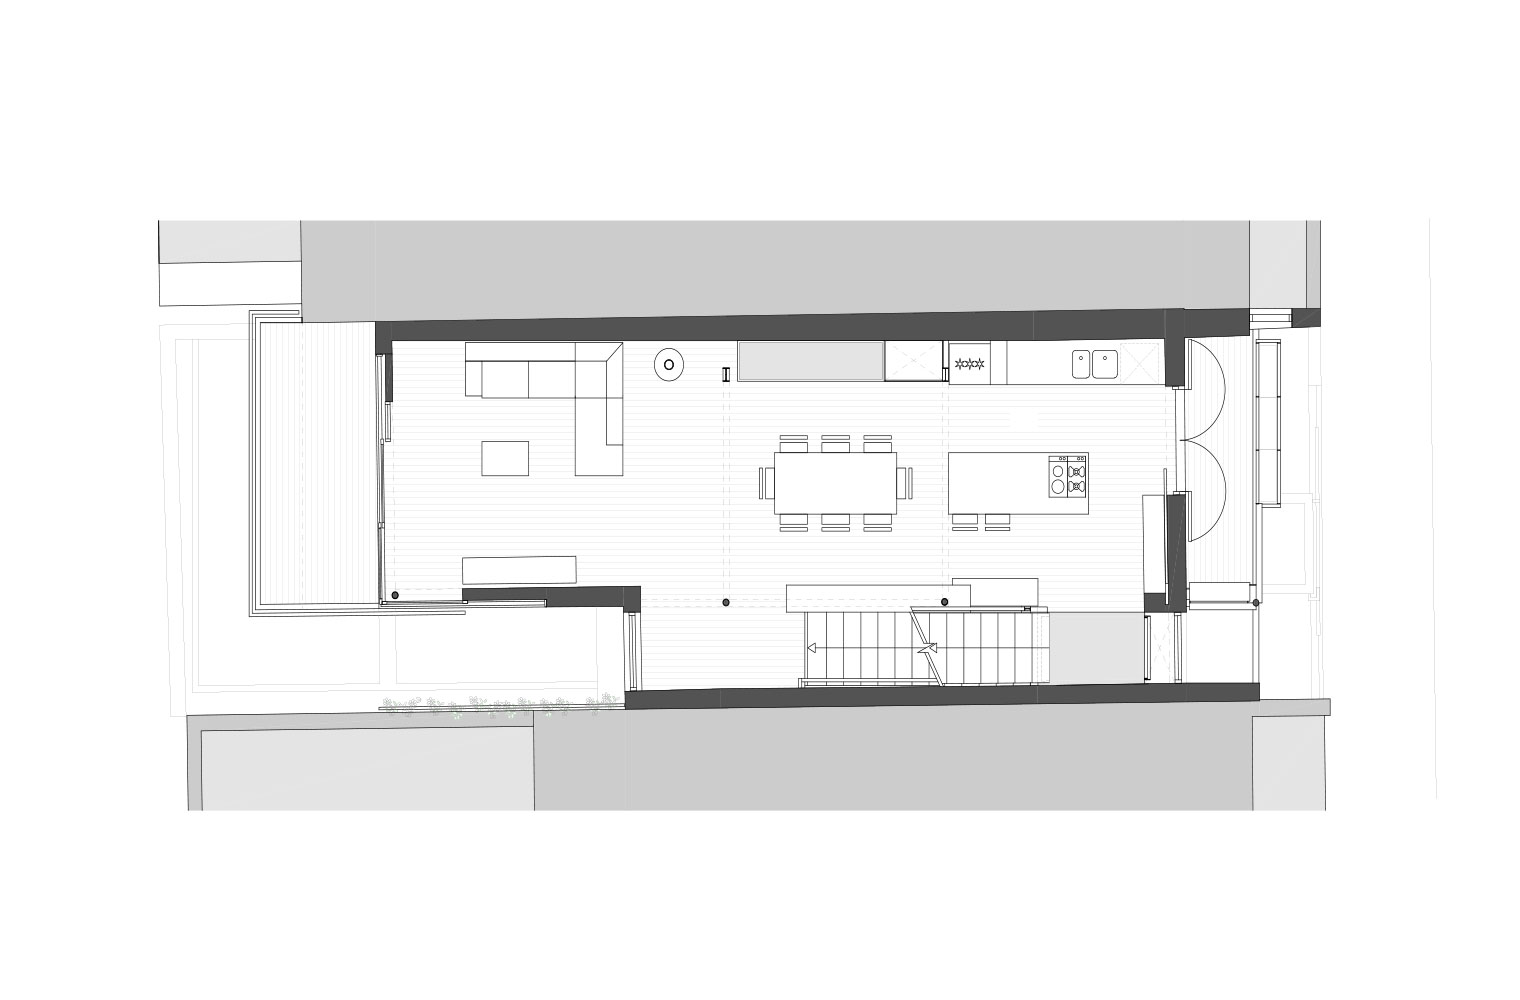 43 Lion Street - First Floor Plan